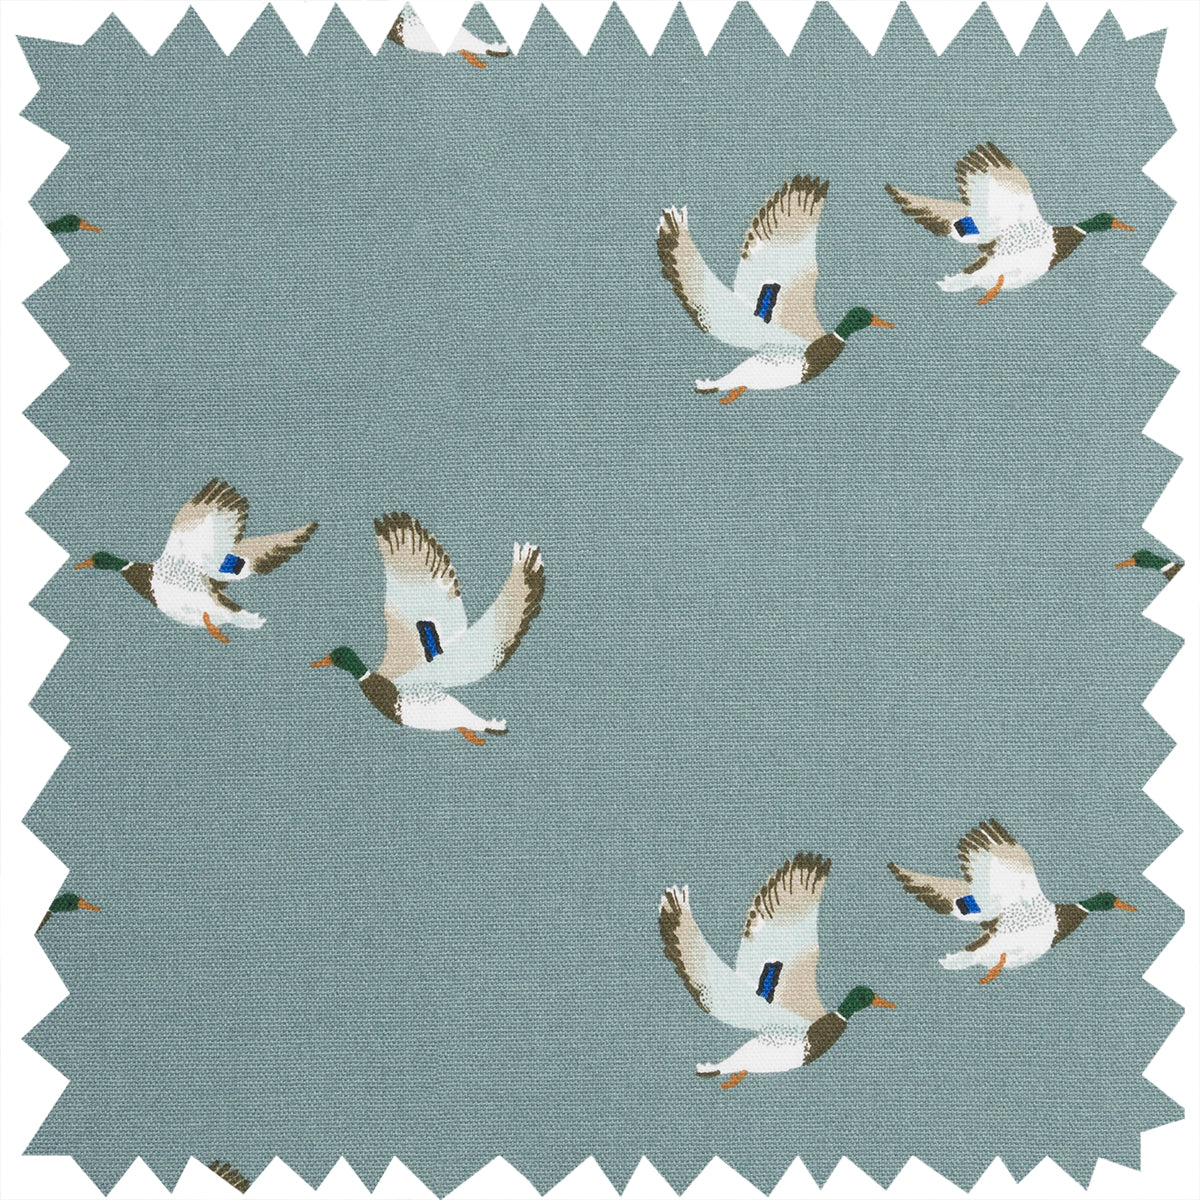 Ducks on a stoenwashed blue background fabric